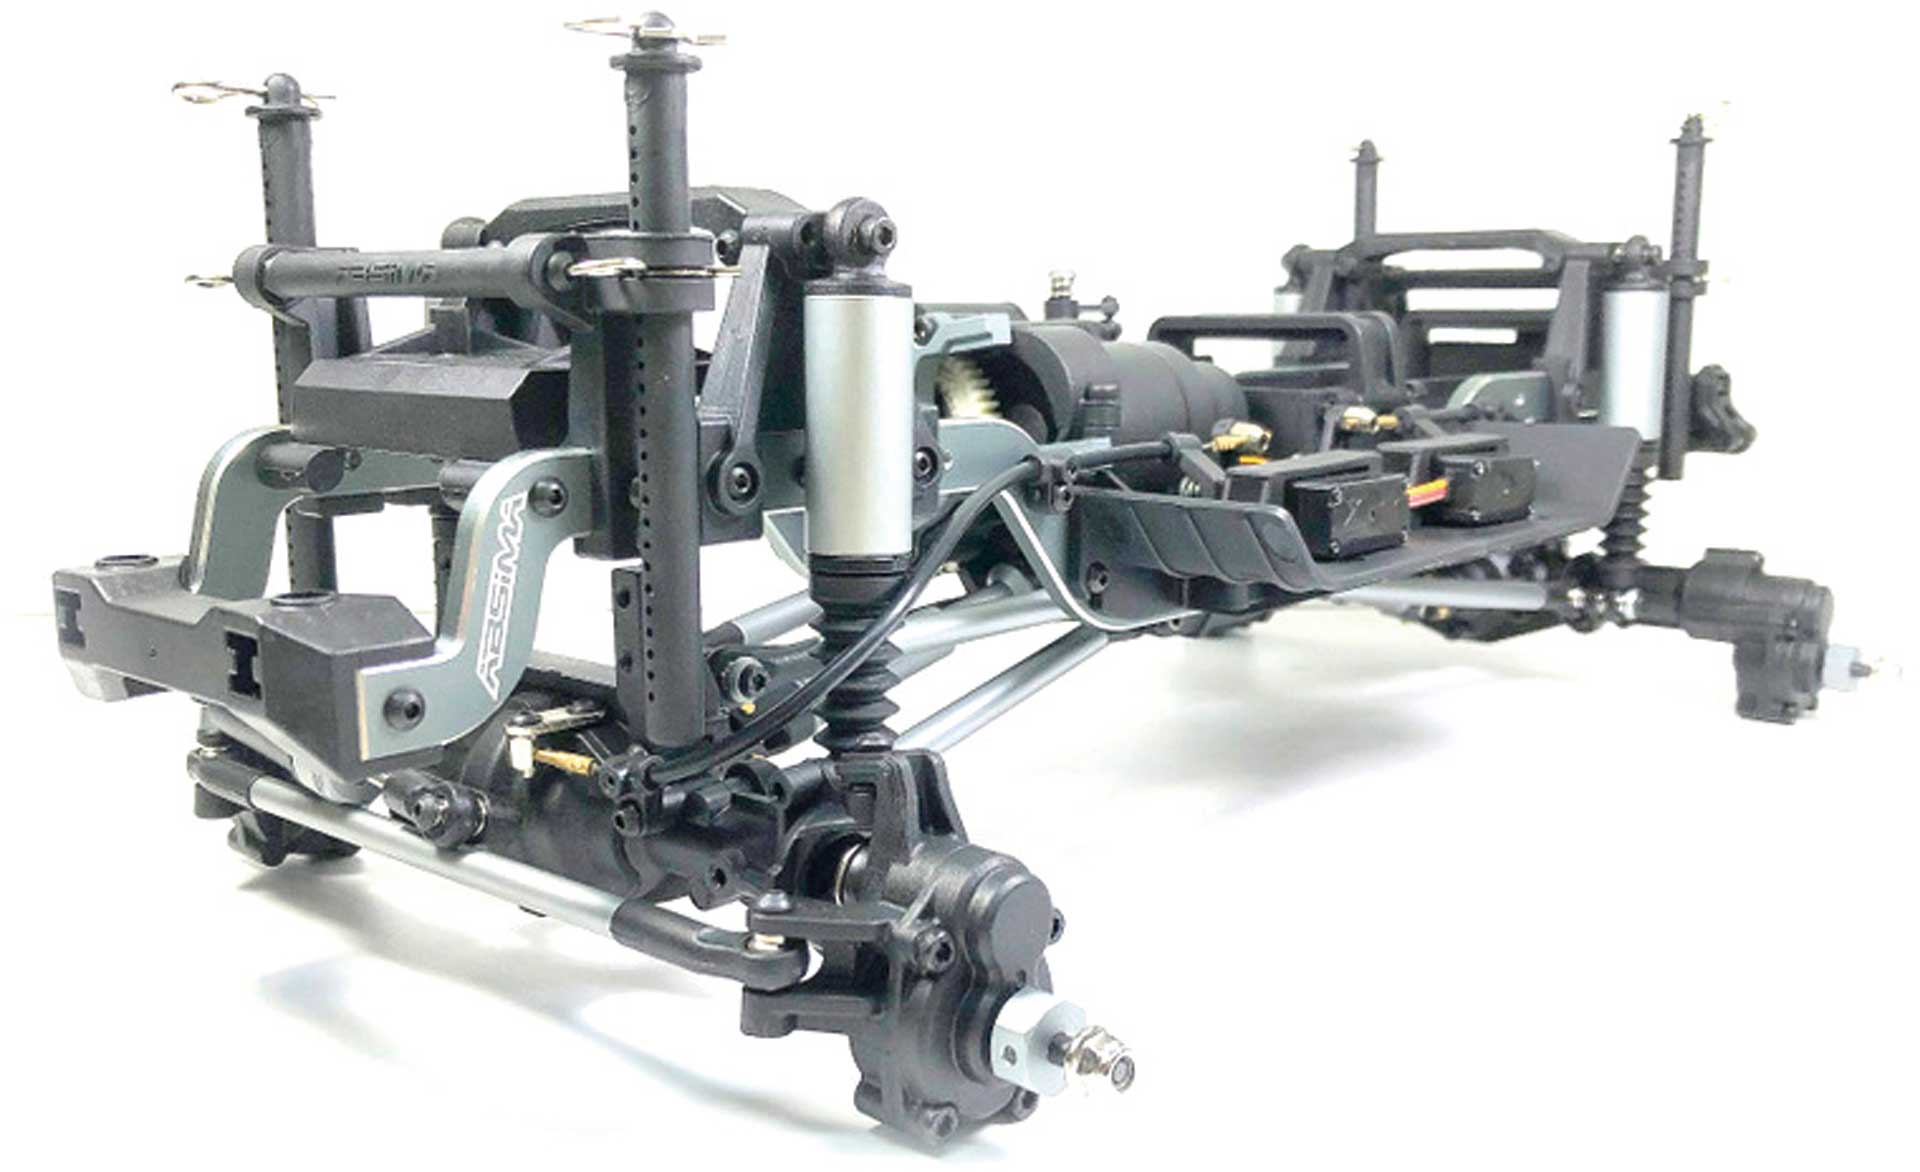 ABSIMA CR3.4 1/10 Crawler Chassis pre-assembled